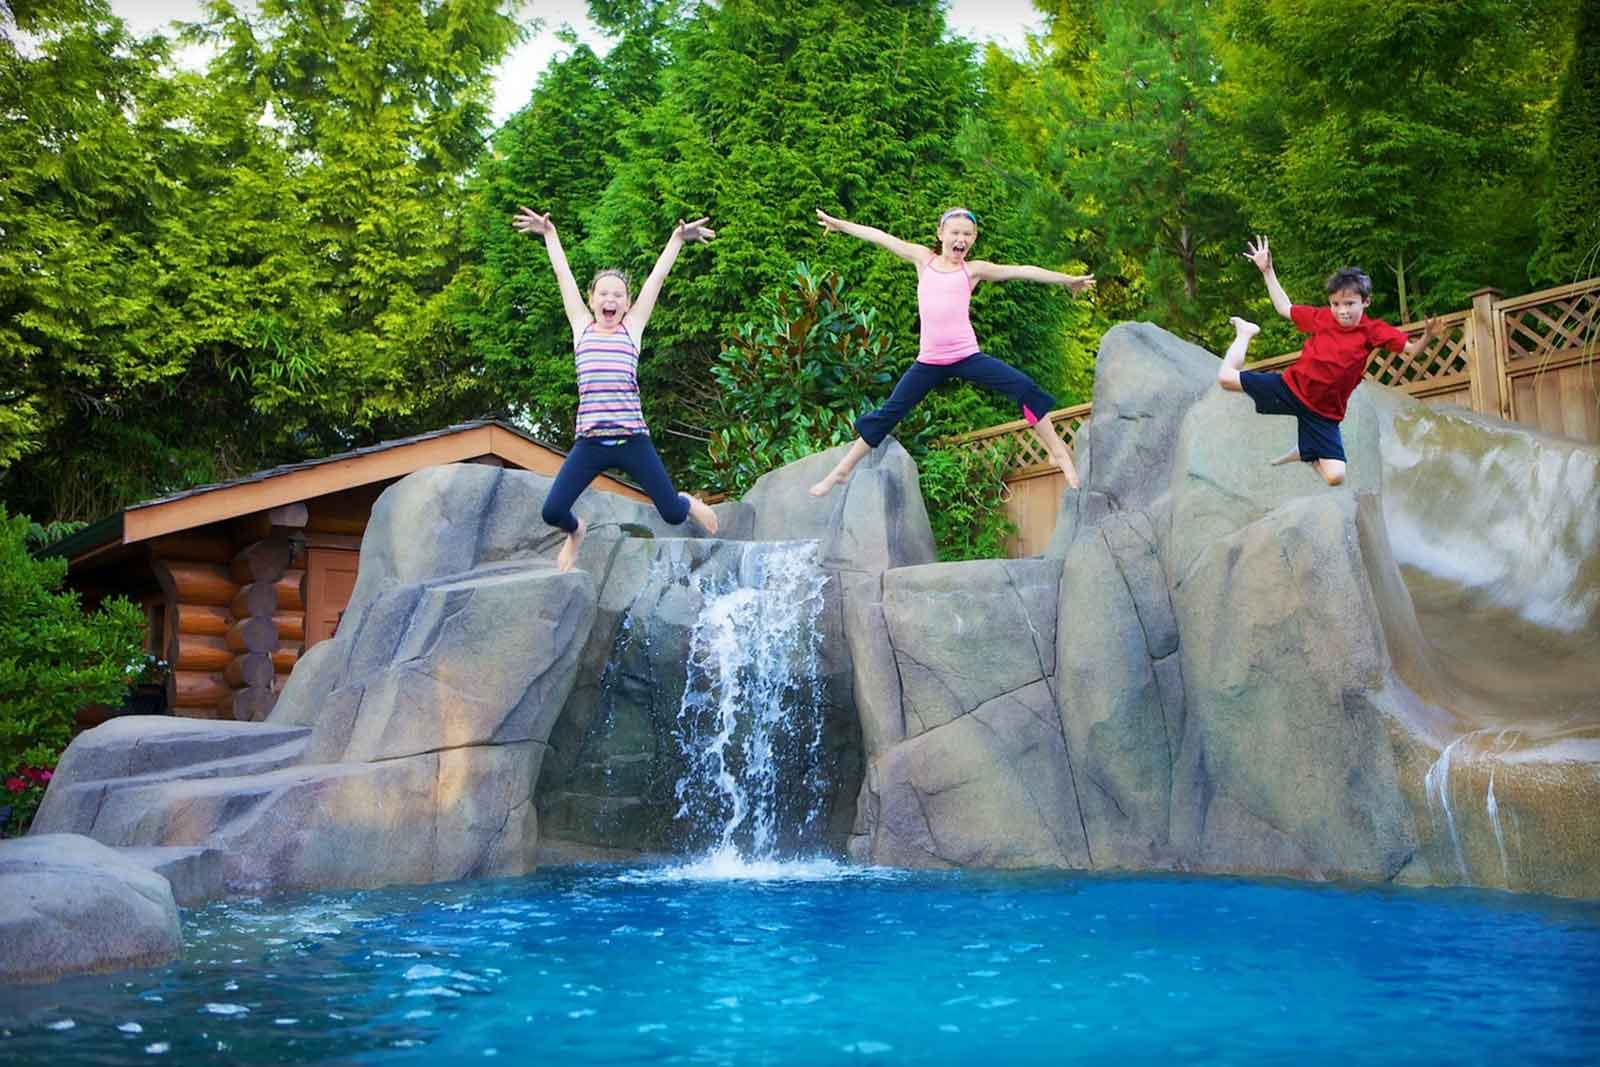 Stunning family backyard waterfall into swimming pool